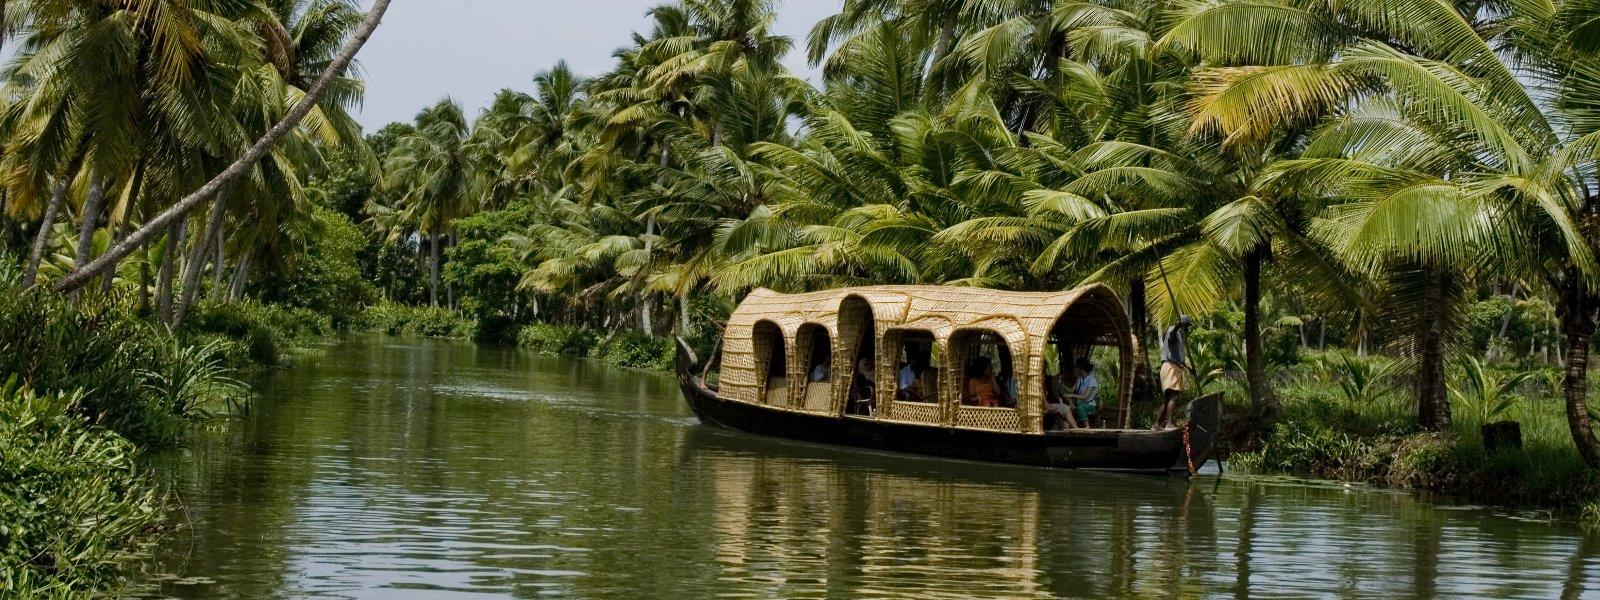 Pristine Views and Kerala